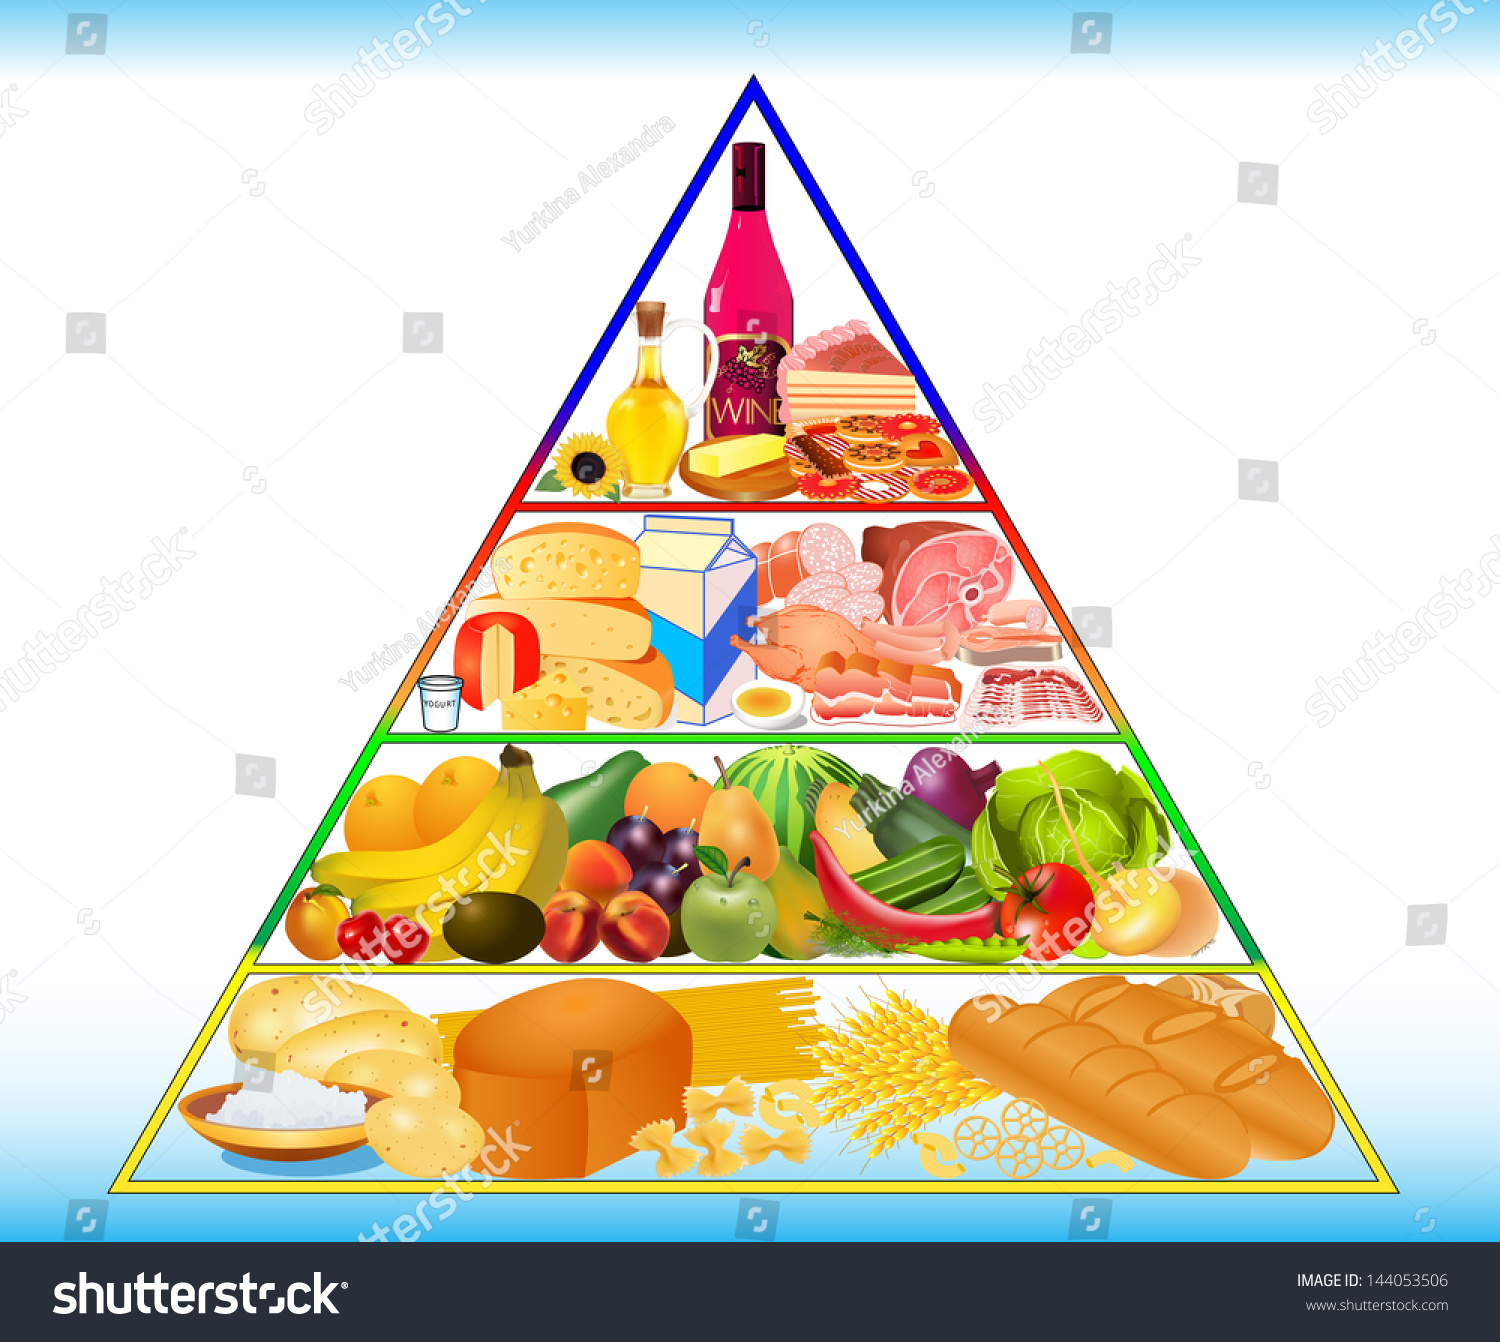 Illustration Healthy Food Pyramid Bread Sweets Stock